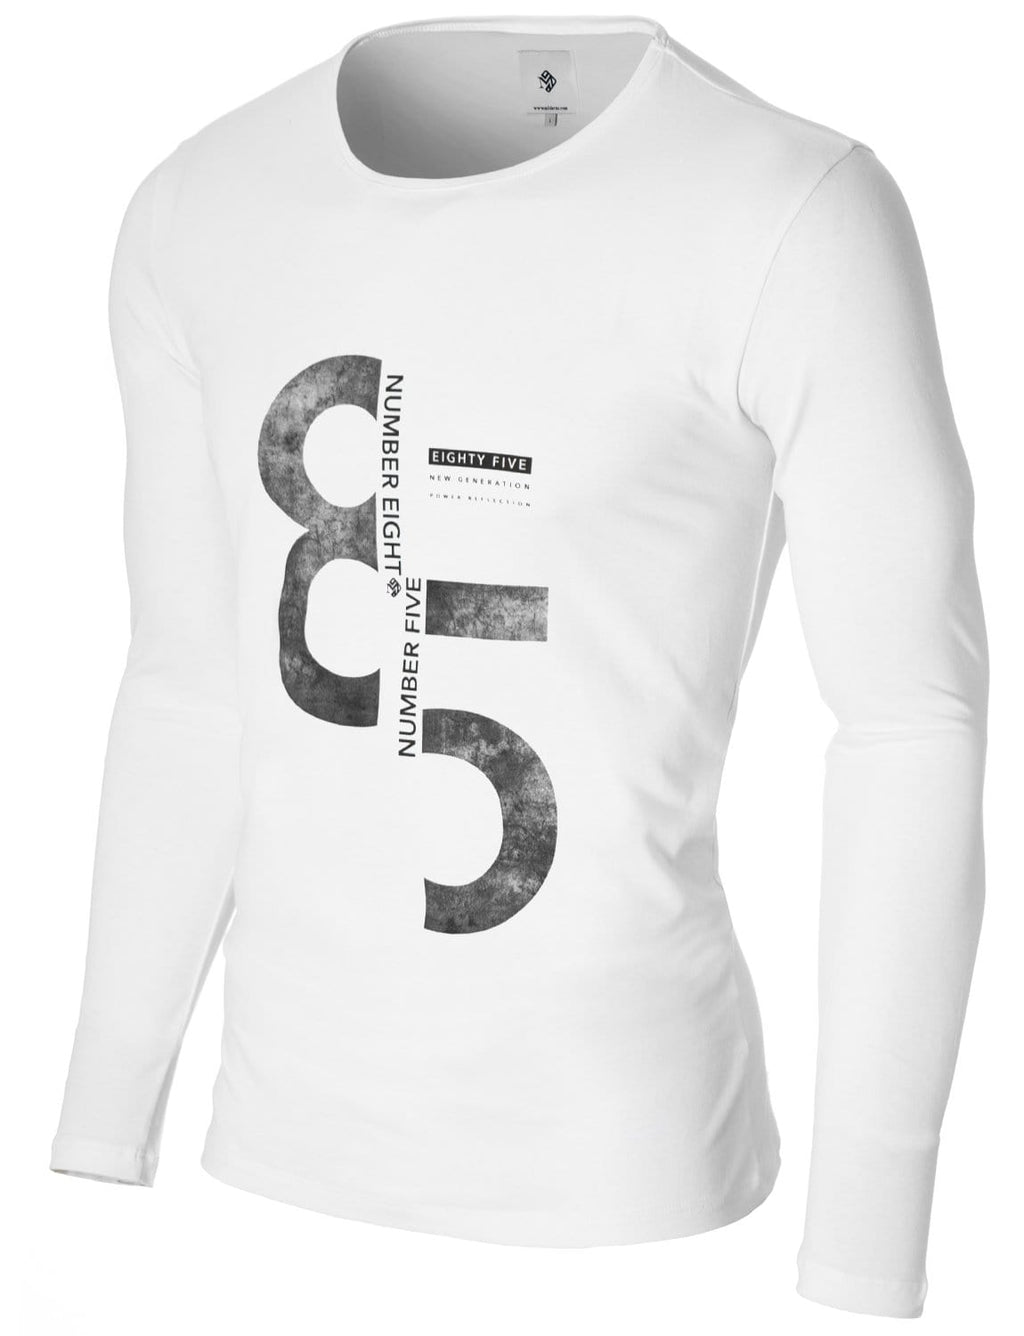 Mens Long Sleeve 85 Print T-shirt White